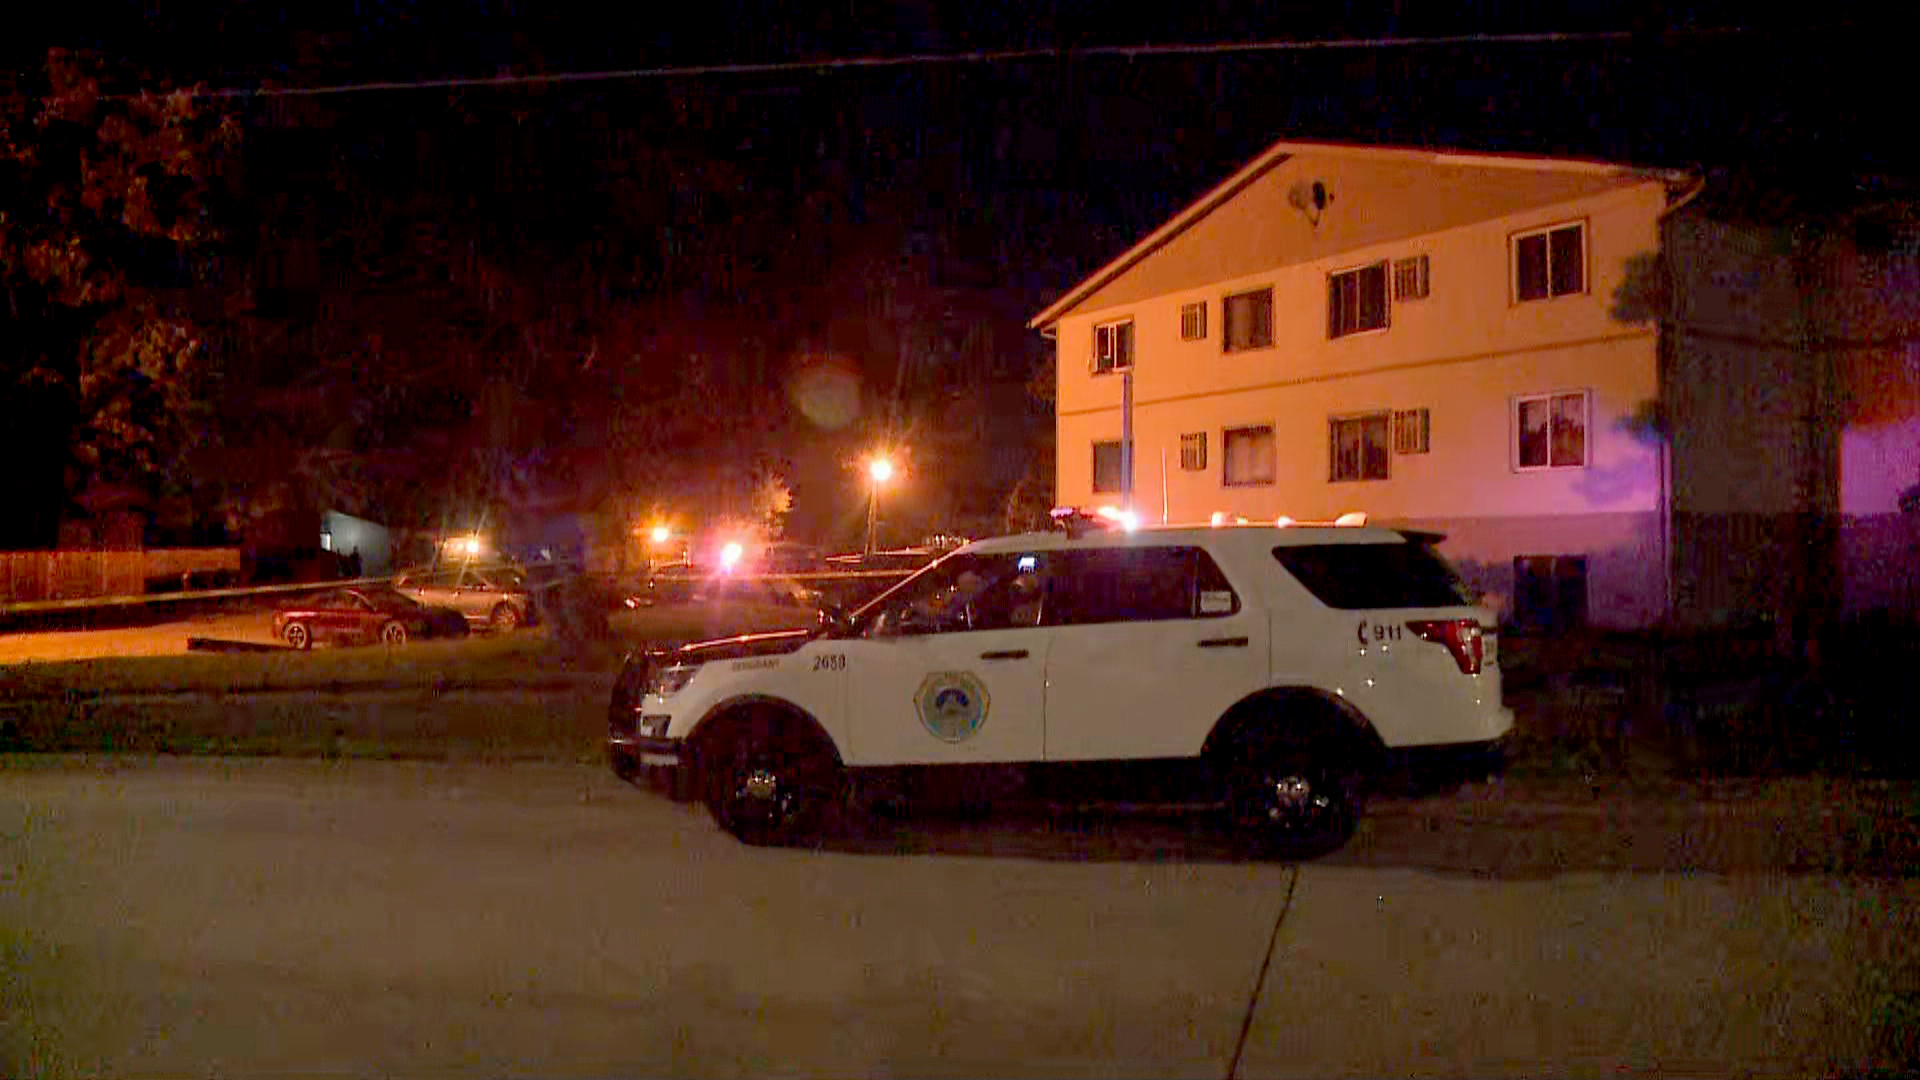 Mother and two children, 11 and 5, found shot to death at Iowa home